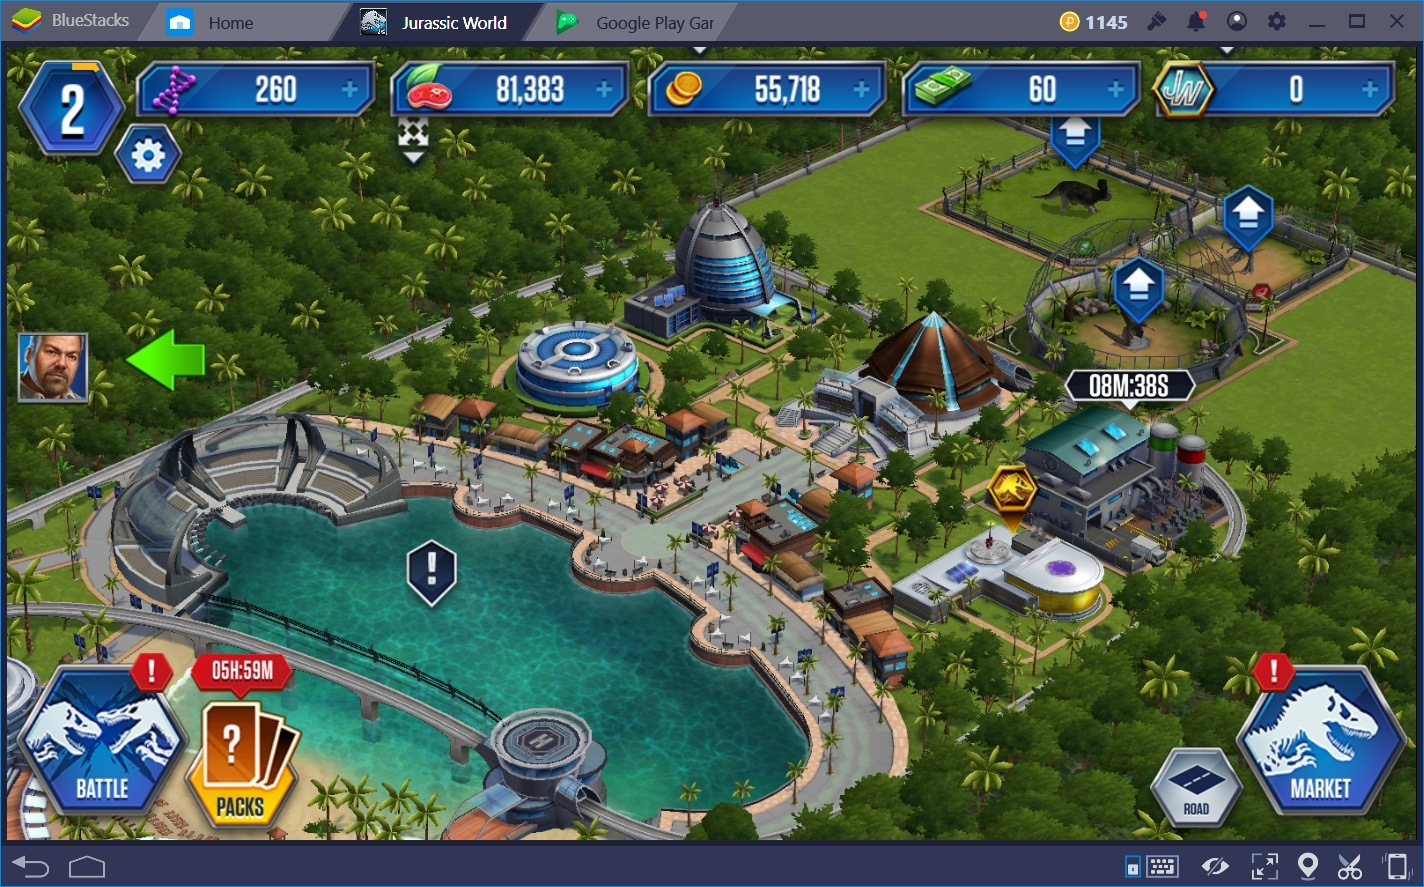 5 Reasons Why You Should Play Jurassic World: The Game